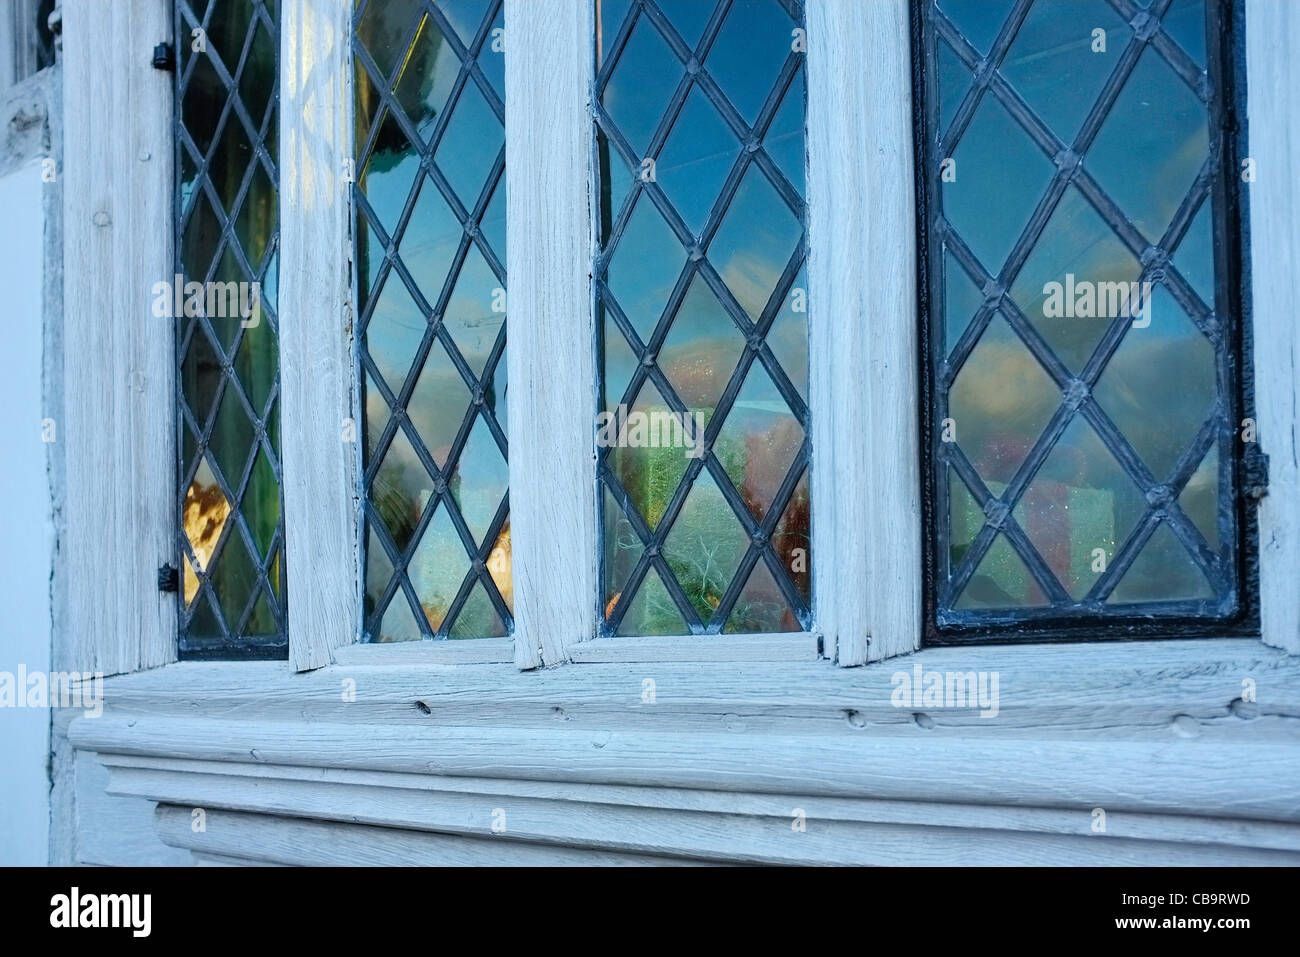 Windows in the Guildhall of the wool guild of Corpus Christi, Lavenham, Suffolk. - Stock Image